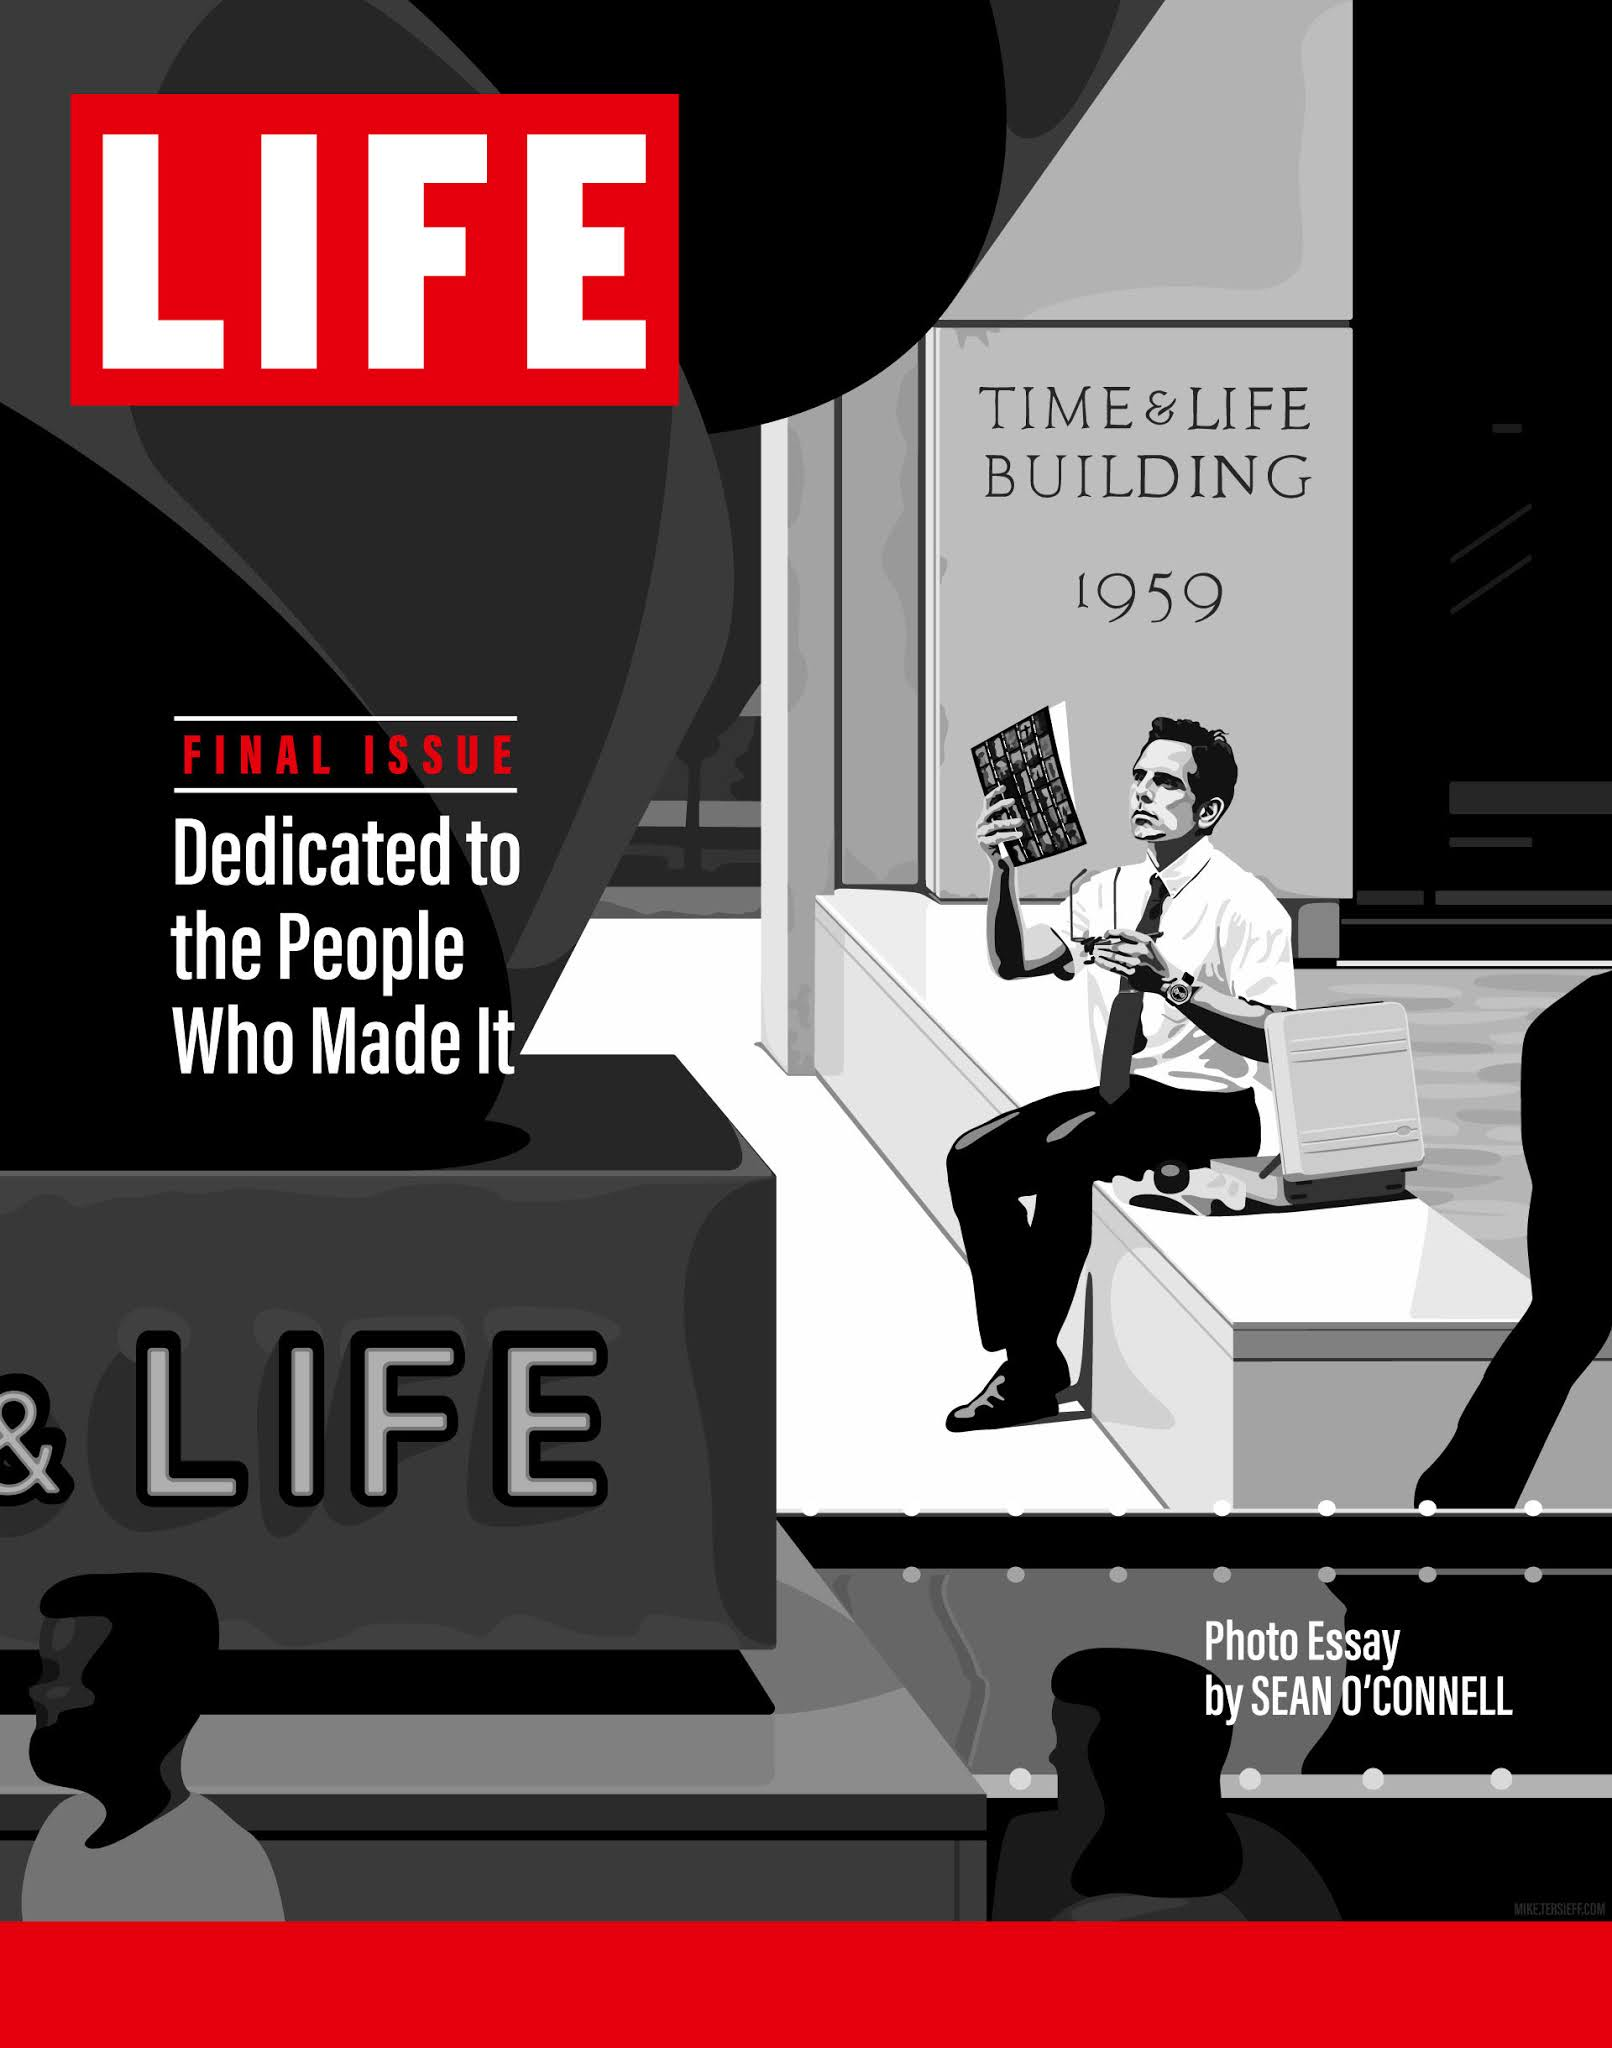 final cover issue for the life magazine in the movie secret life of walter mitty